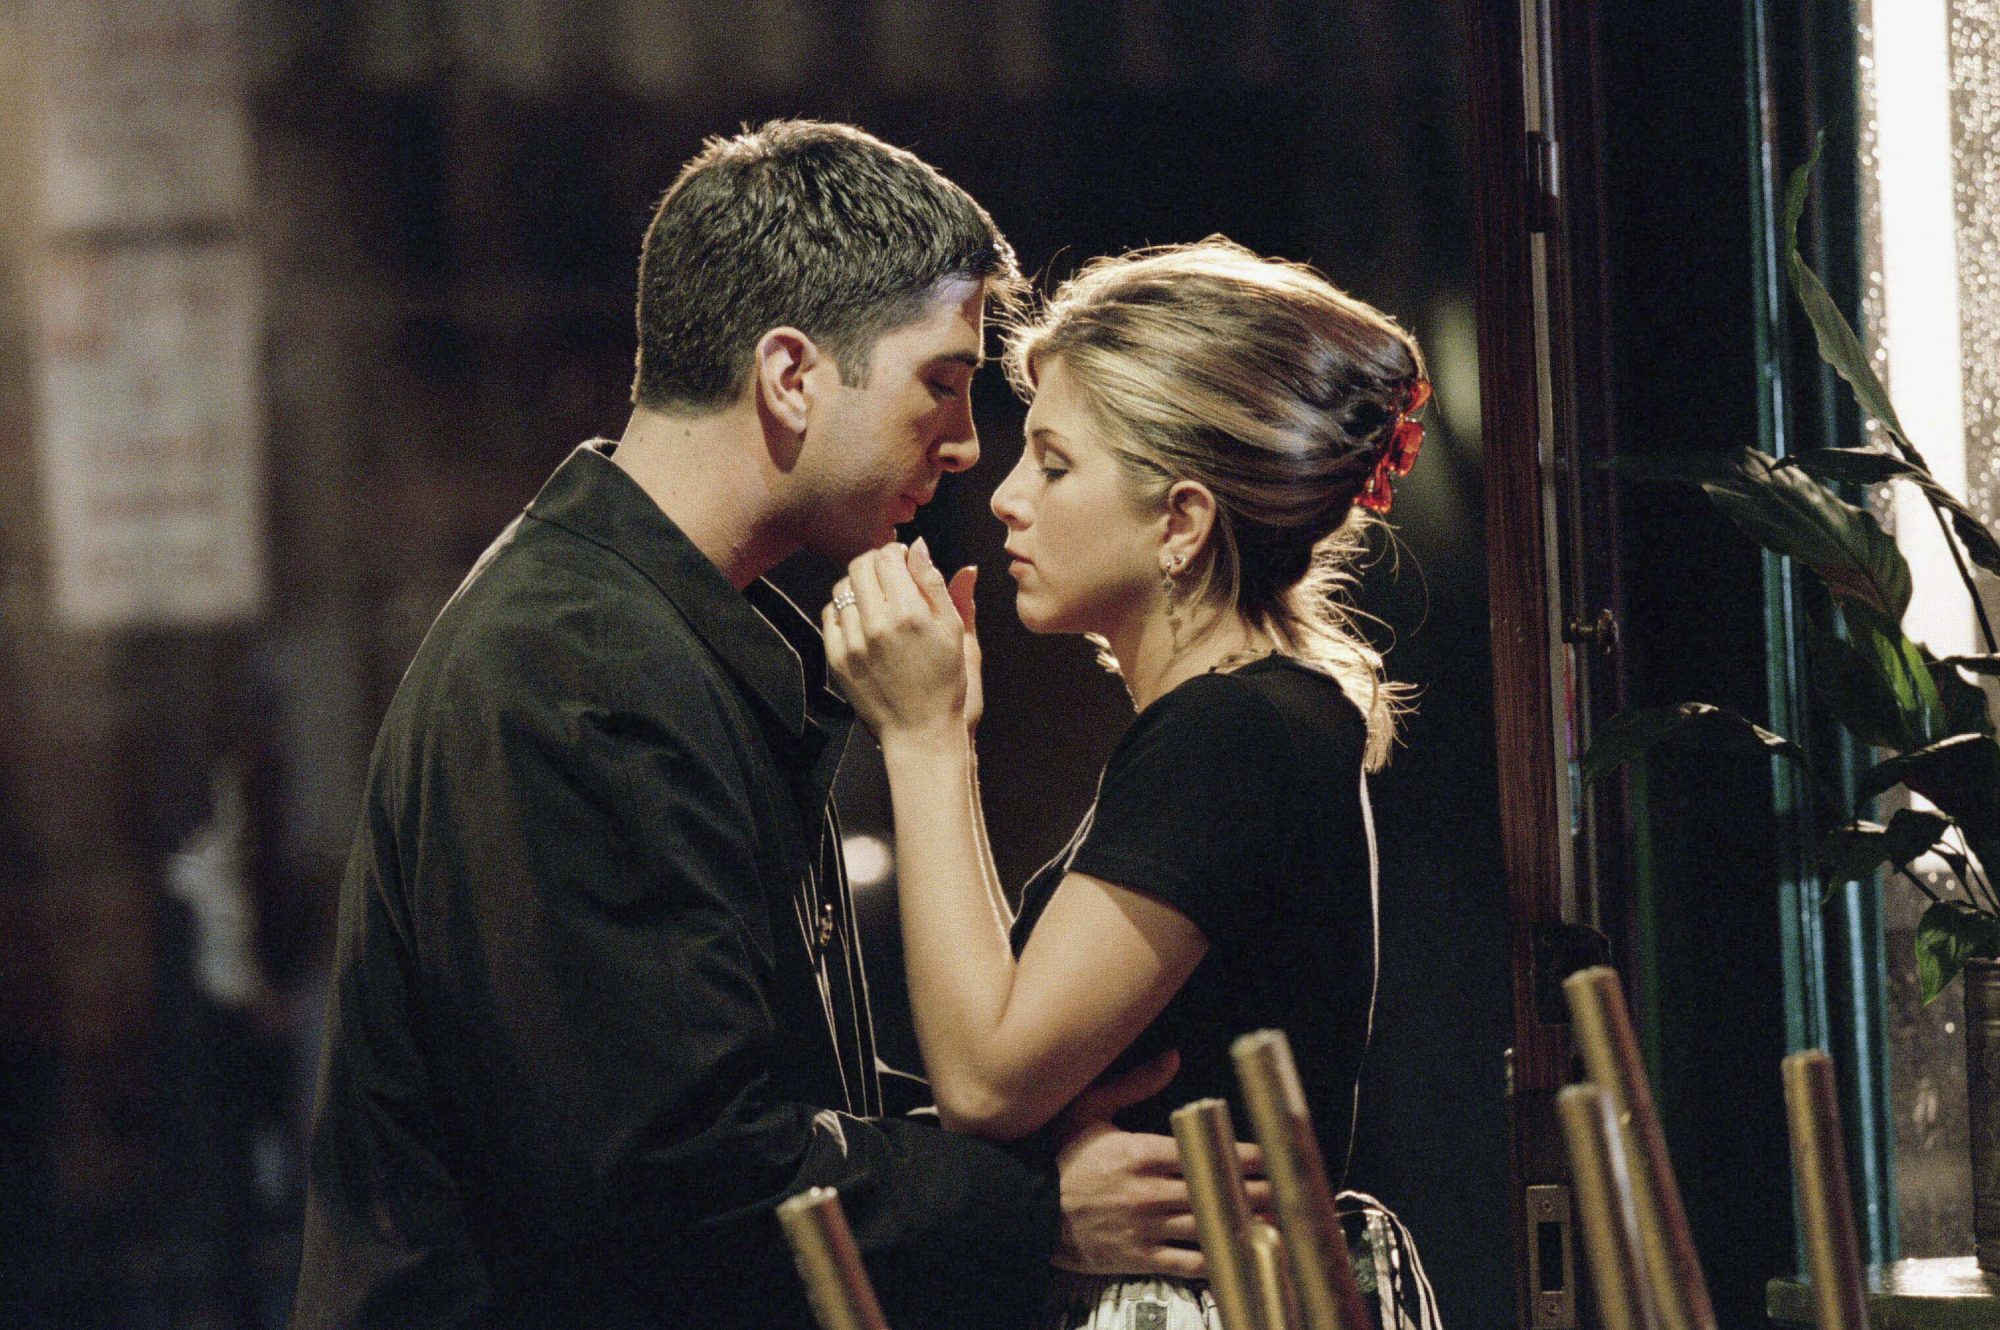 ross and rachel on Friends, david schwimmer and jennifer aniston